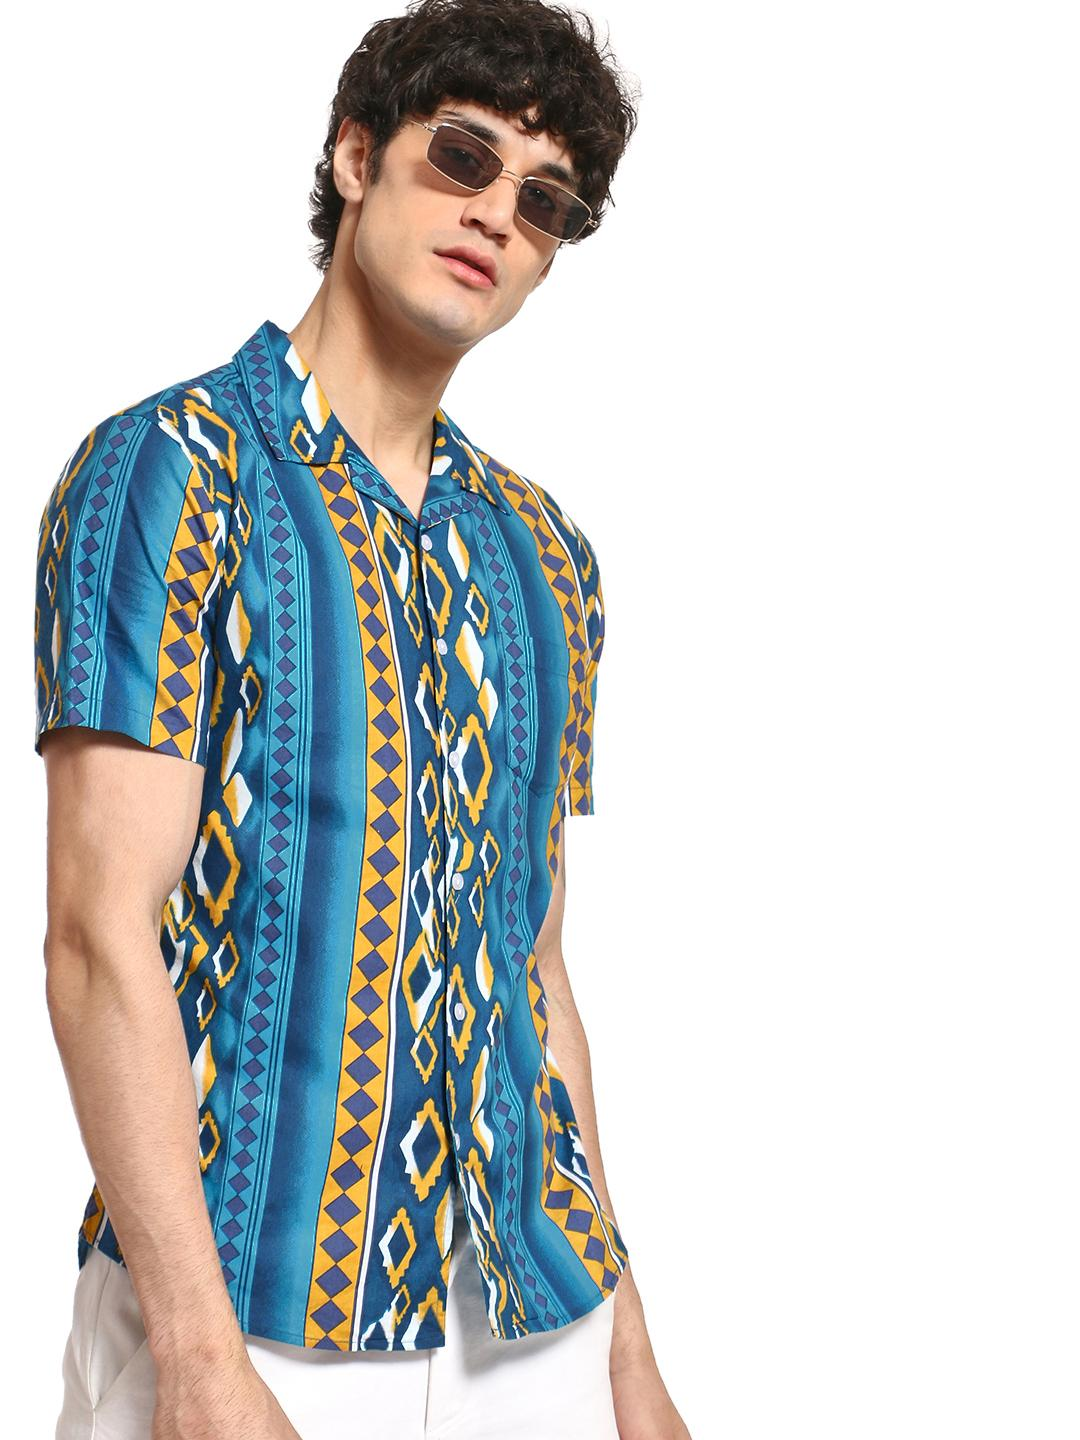 Spring Break Blue Aztec Print Cuban Collar Shirt 1